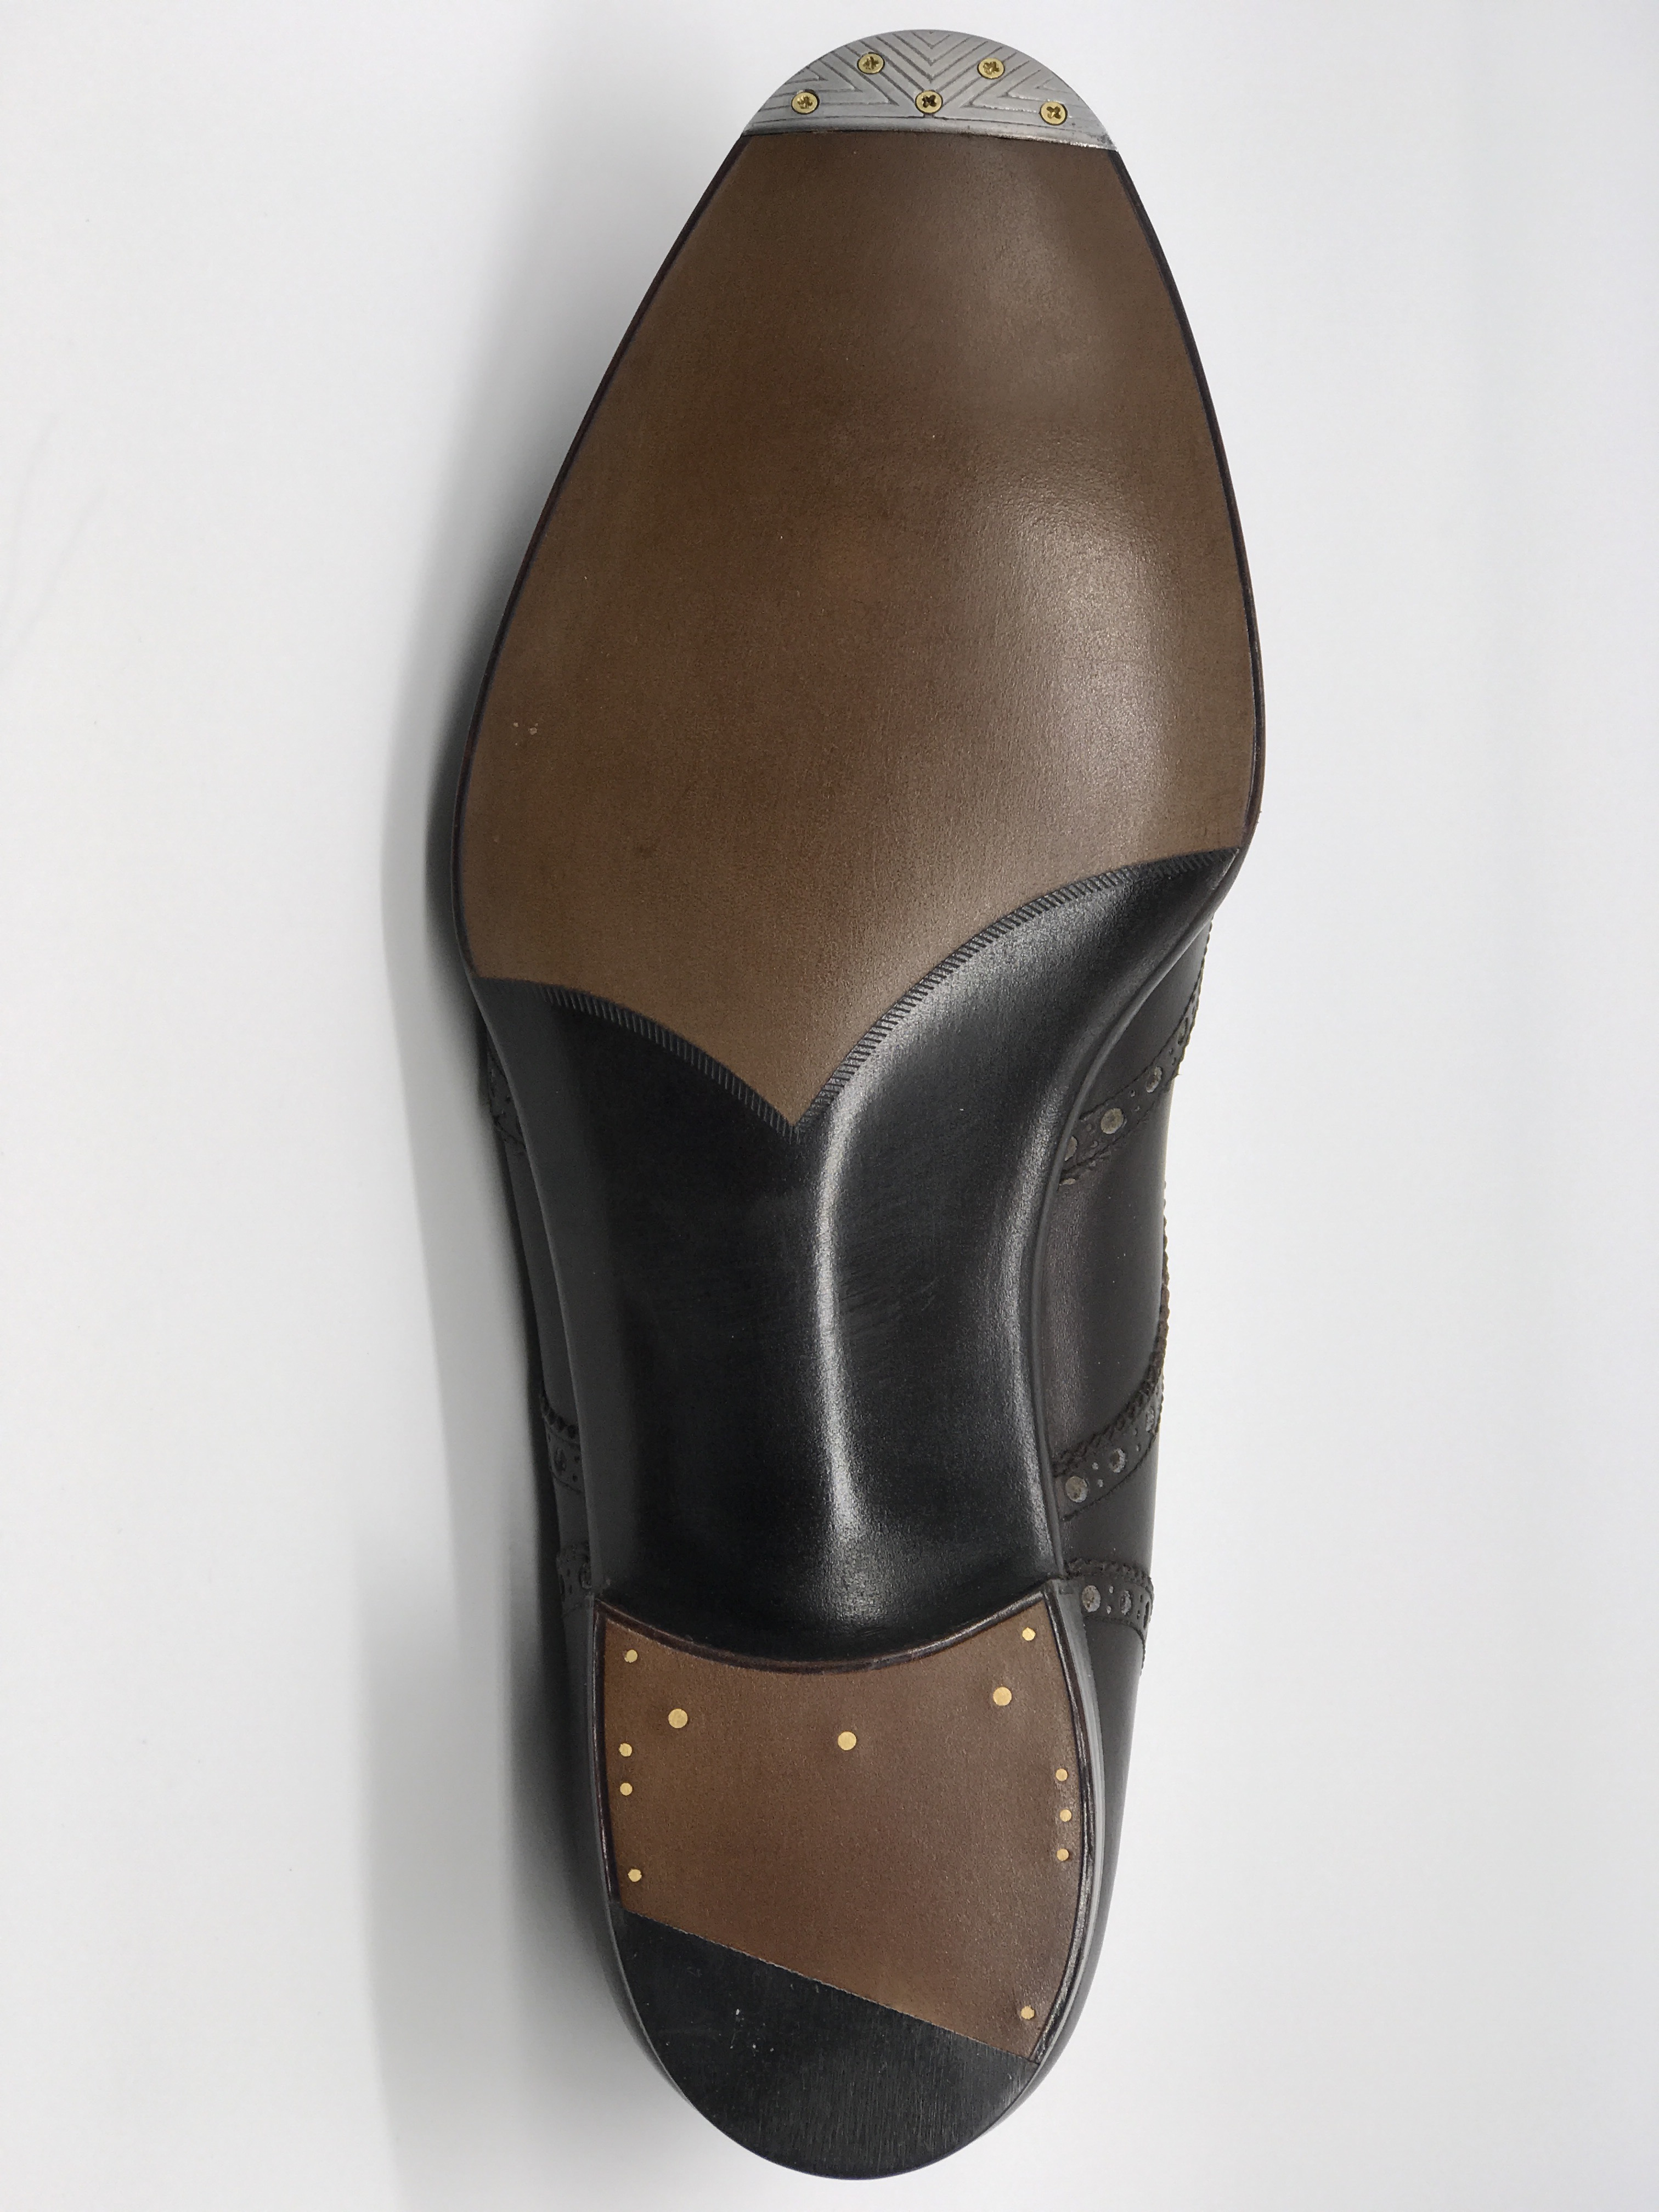 Piched heel